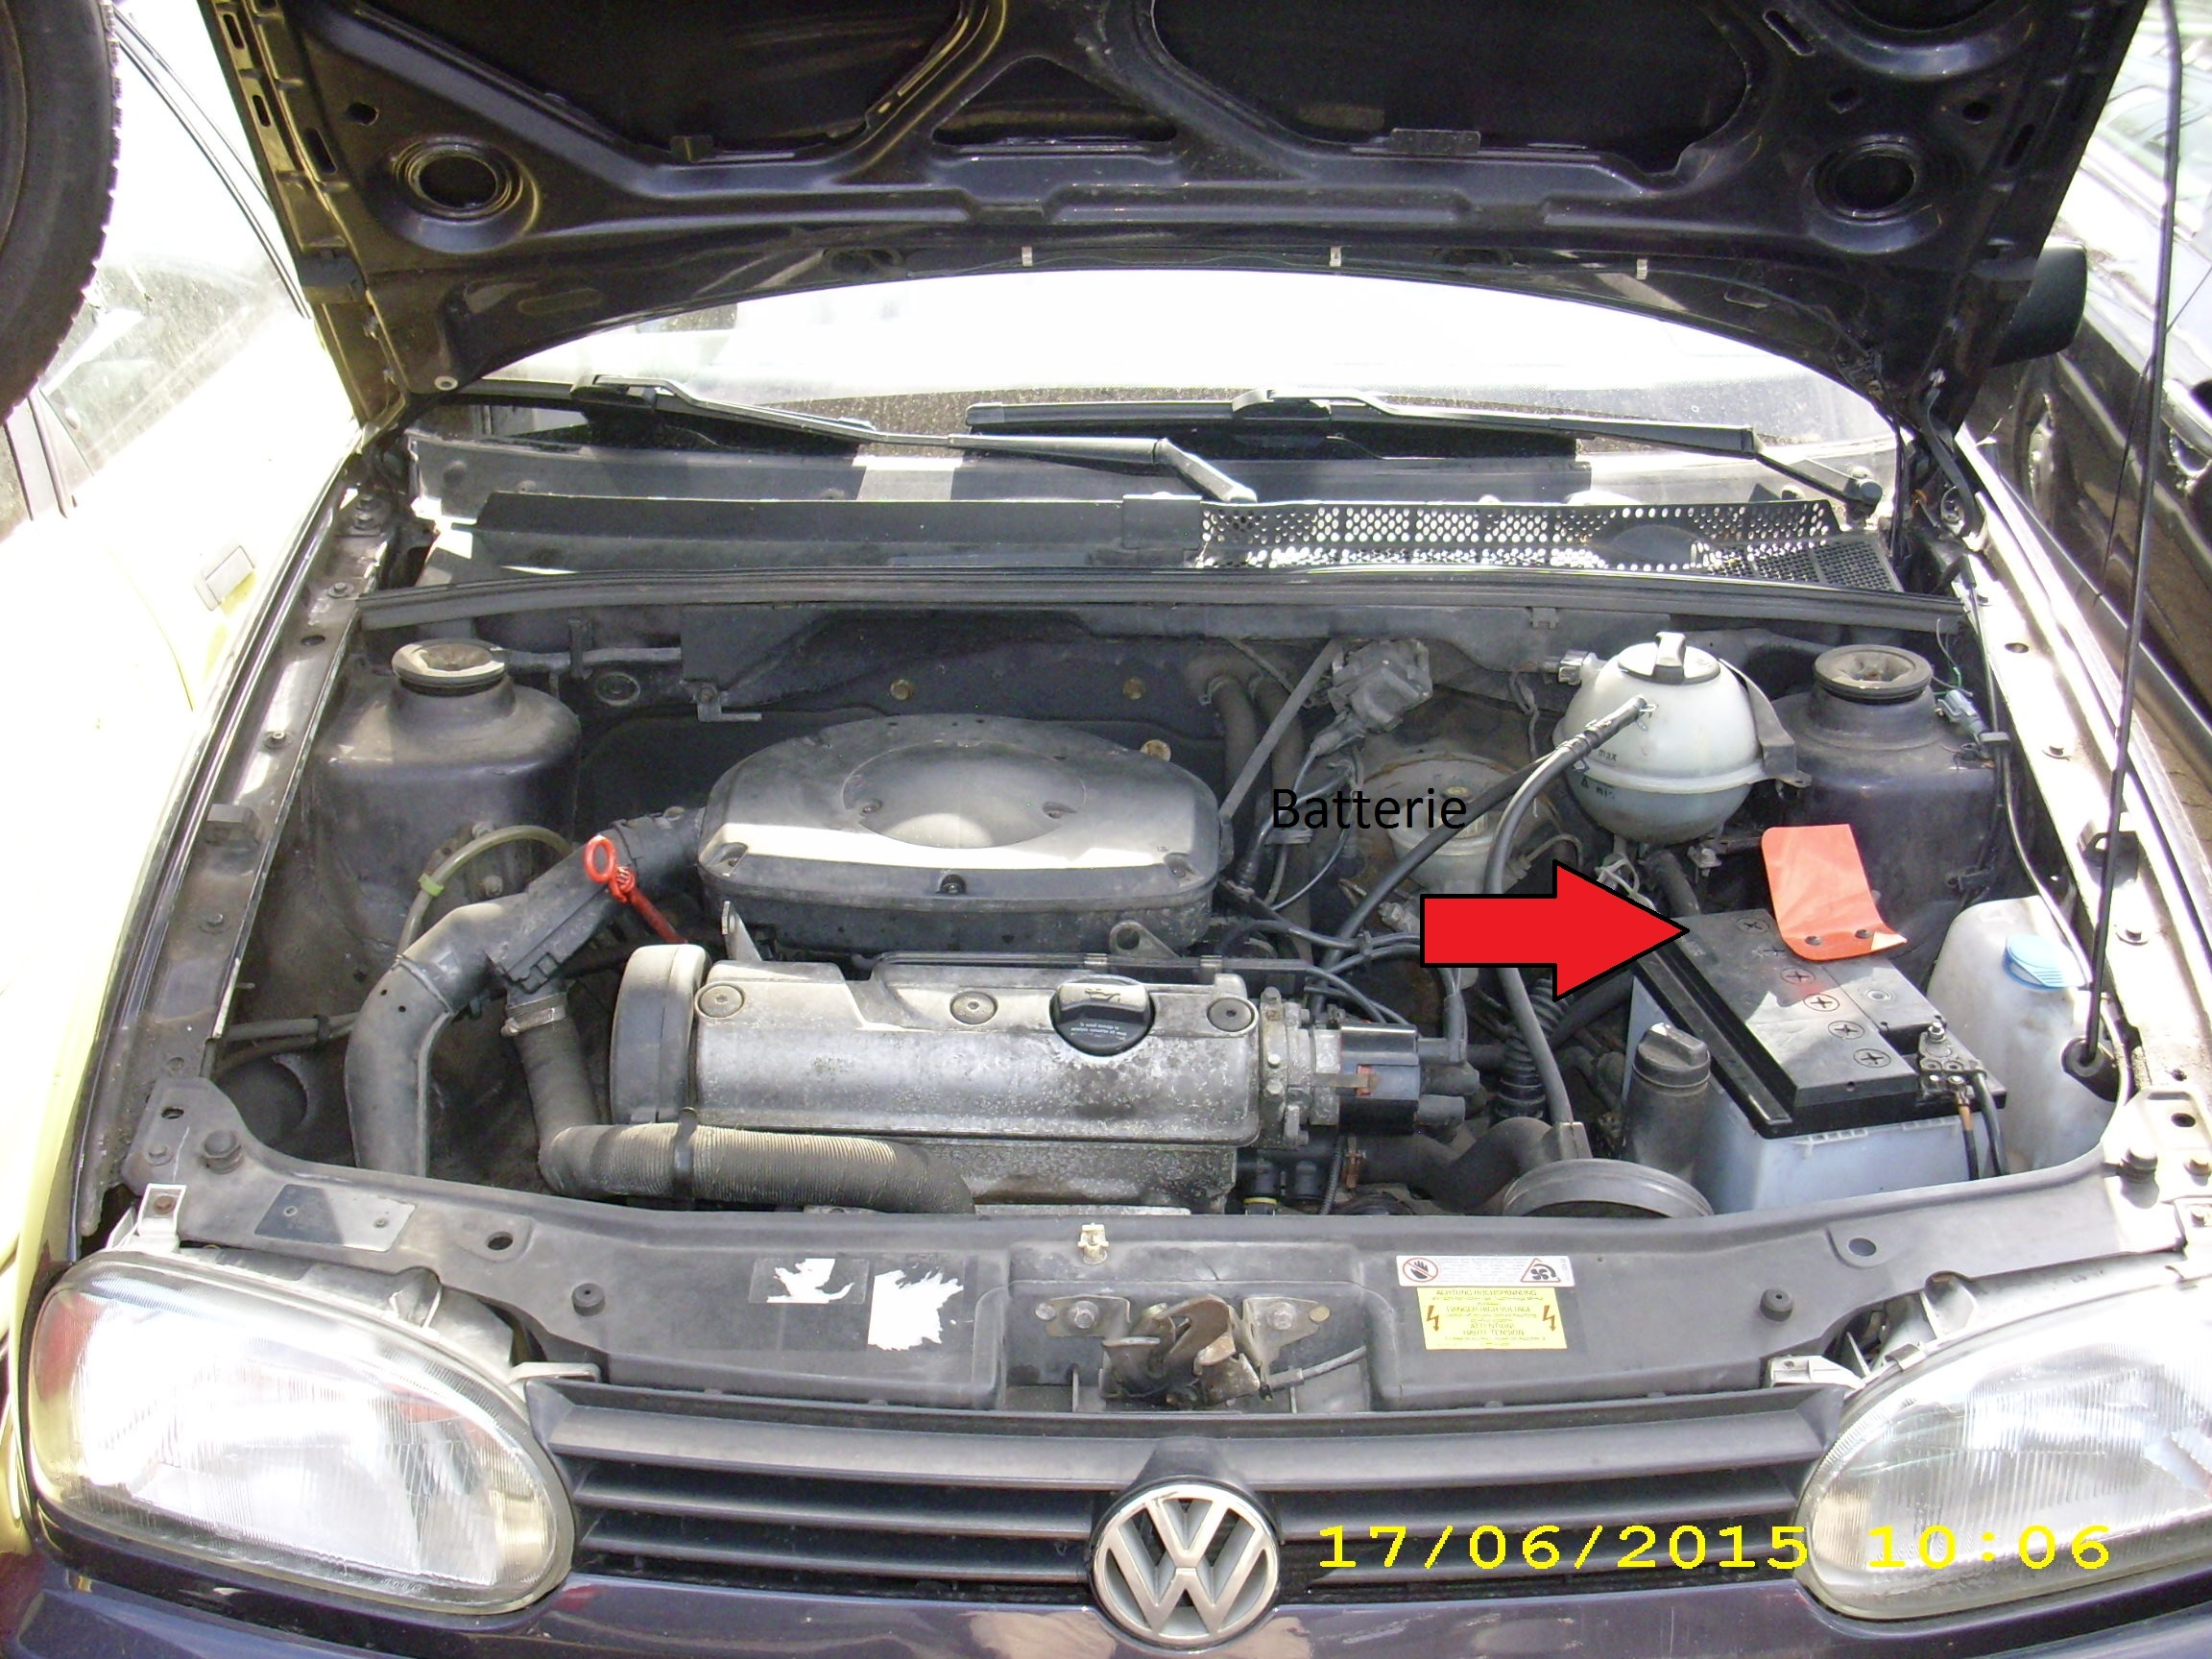 VW Variant, Golf, Golf 3, Seat Cordoba Batterie repwiki Fri-Aug-21-2015-11-10-20-GMT-0200.jpg